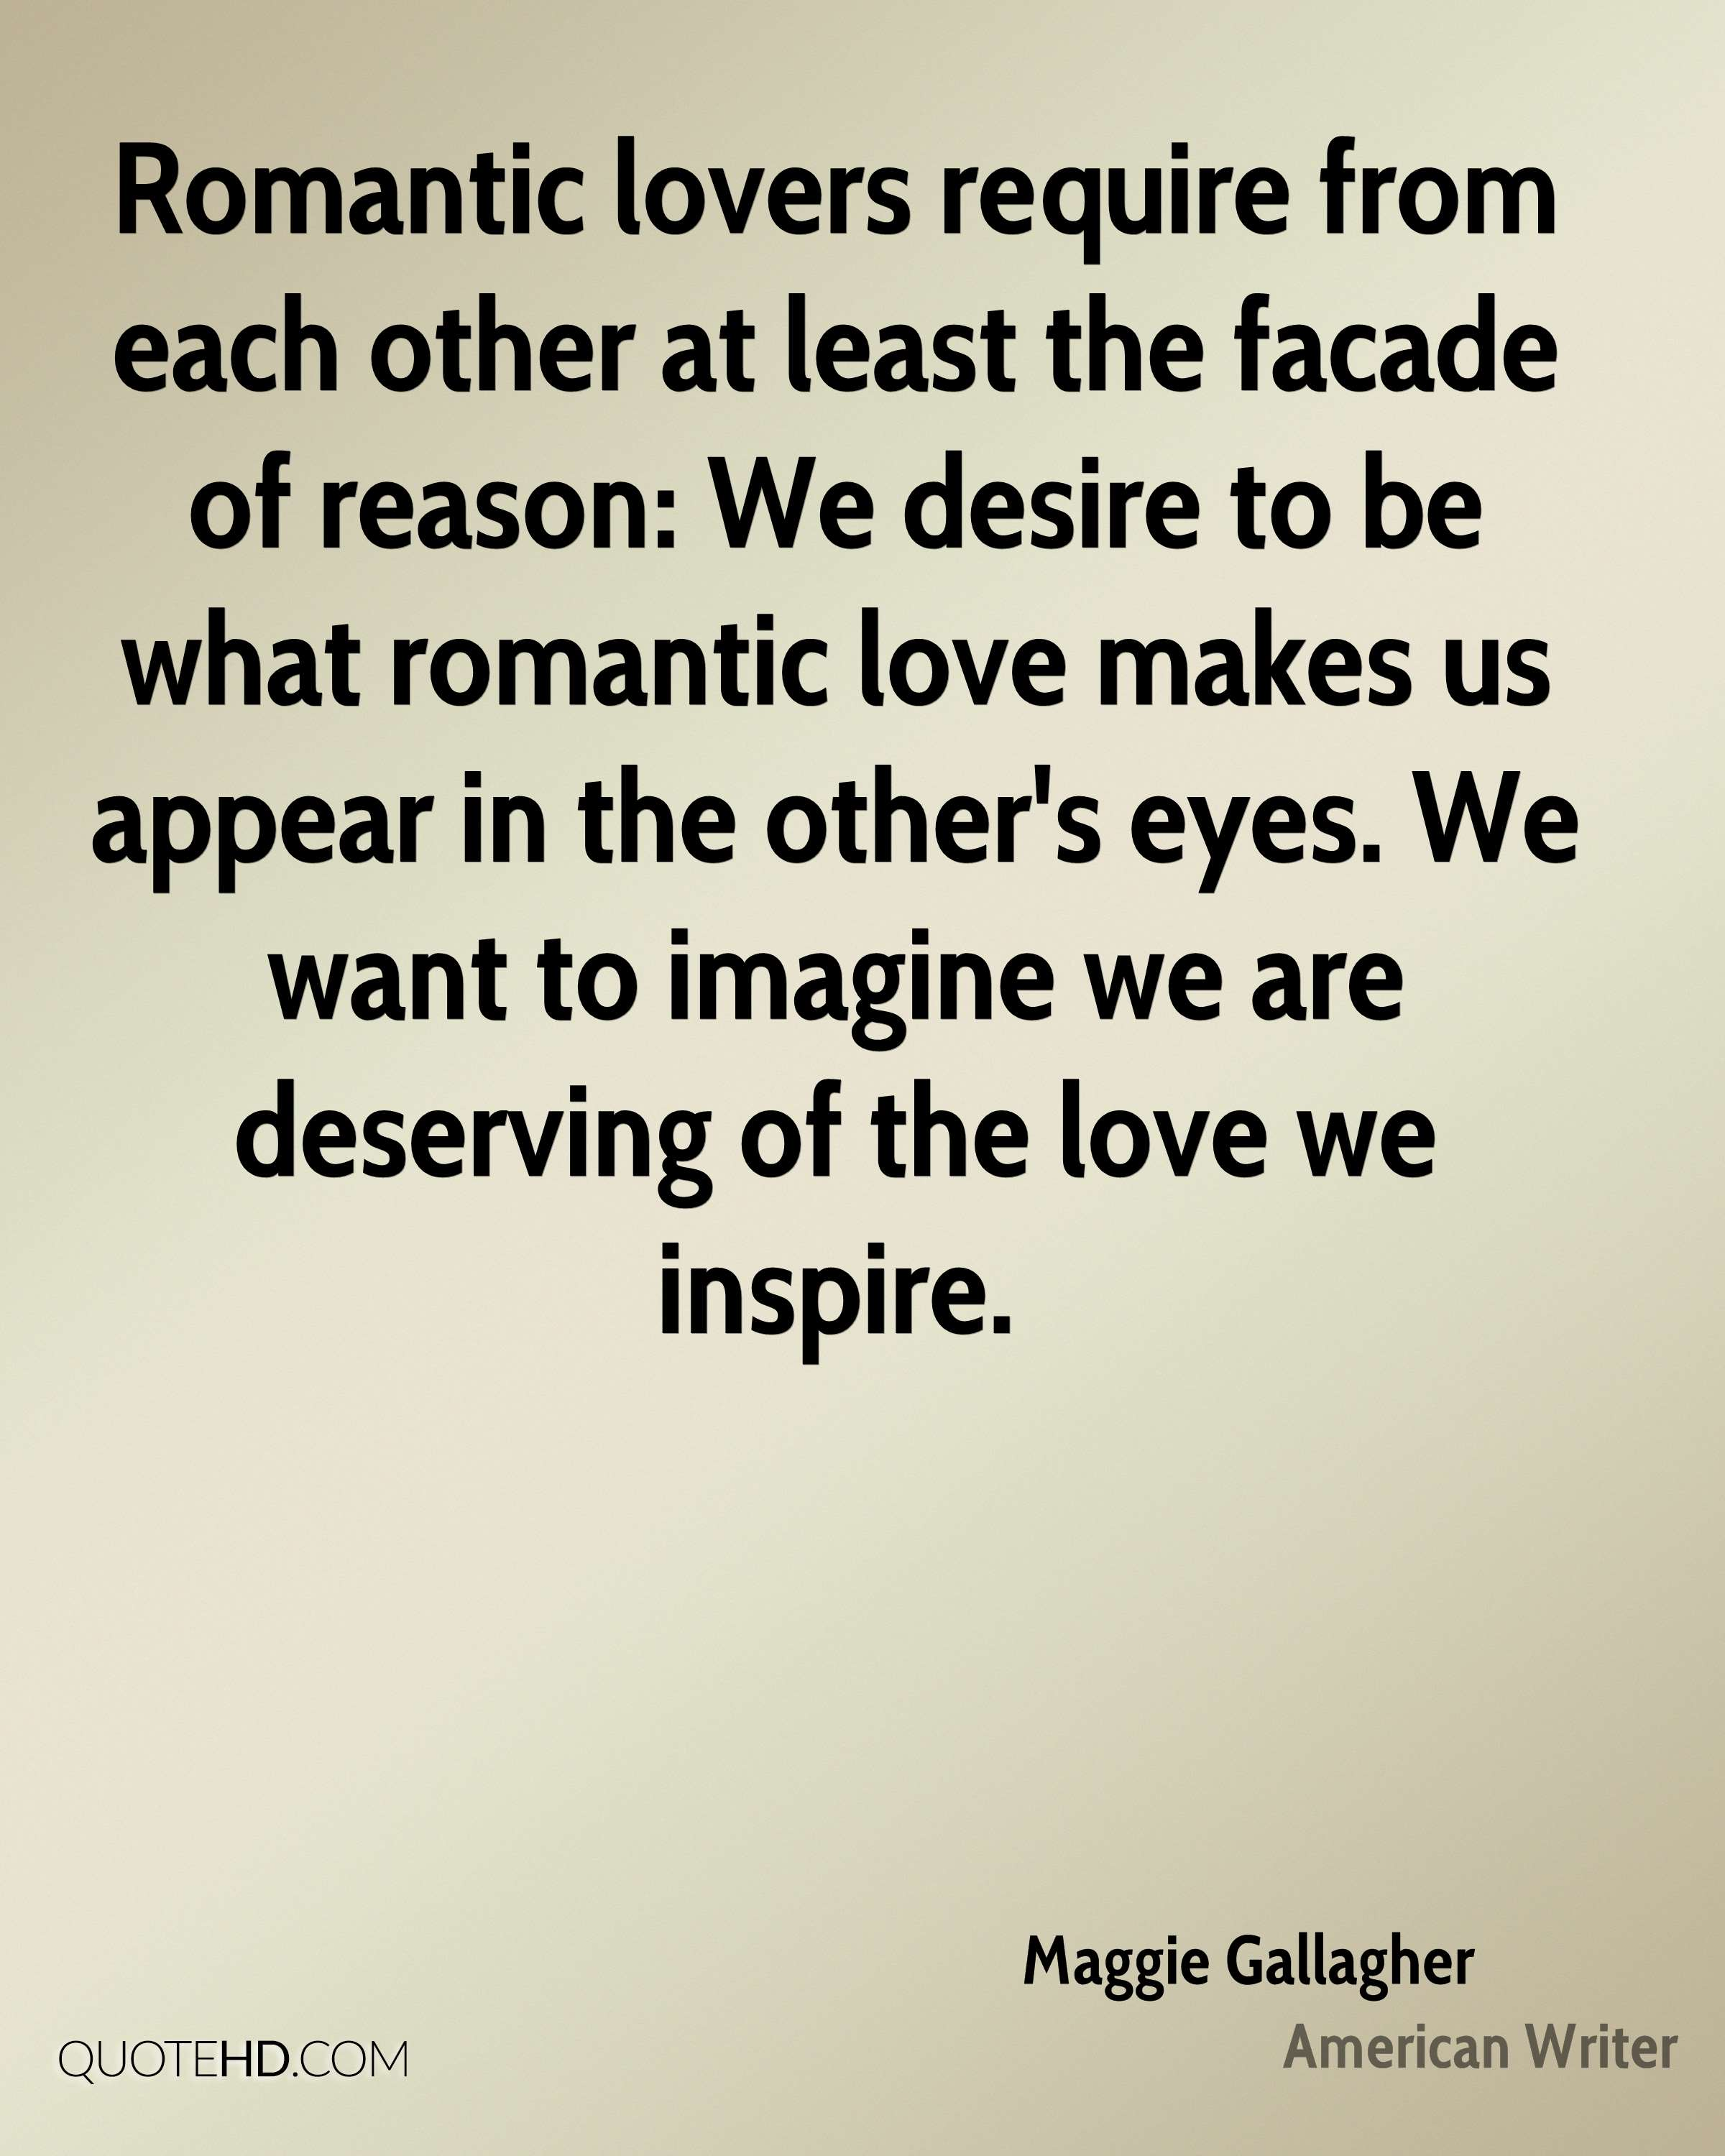 Romantic lovers require from each other at least the facade of reason: We desire to be what romantic love makes us appear in the other's eyes. We want to imagine we are deserving of the love we inspire.